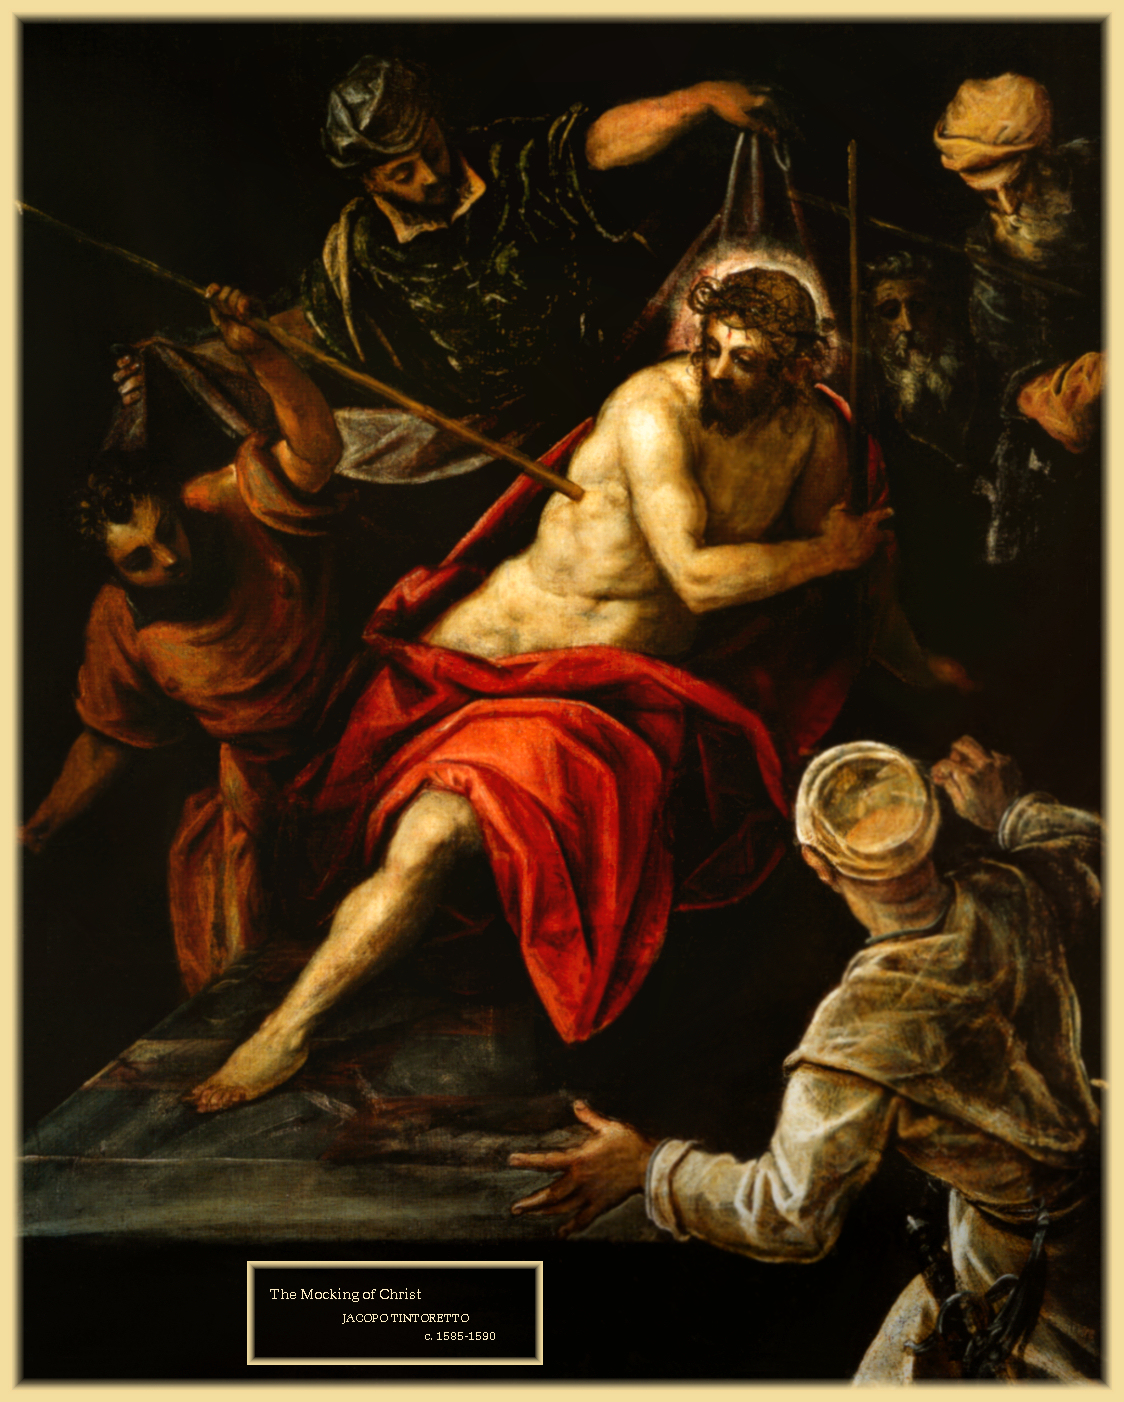 the gallery of the passion of christ